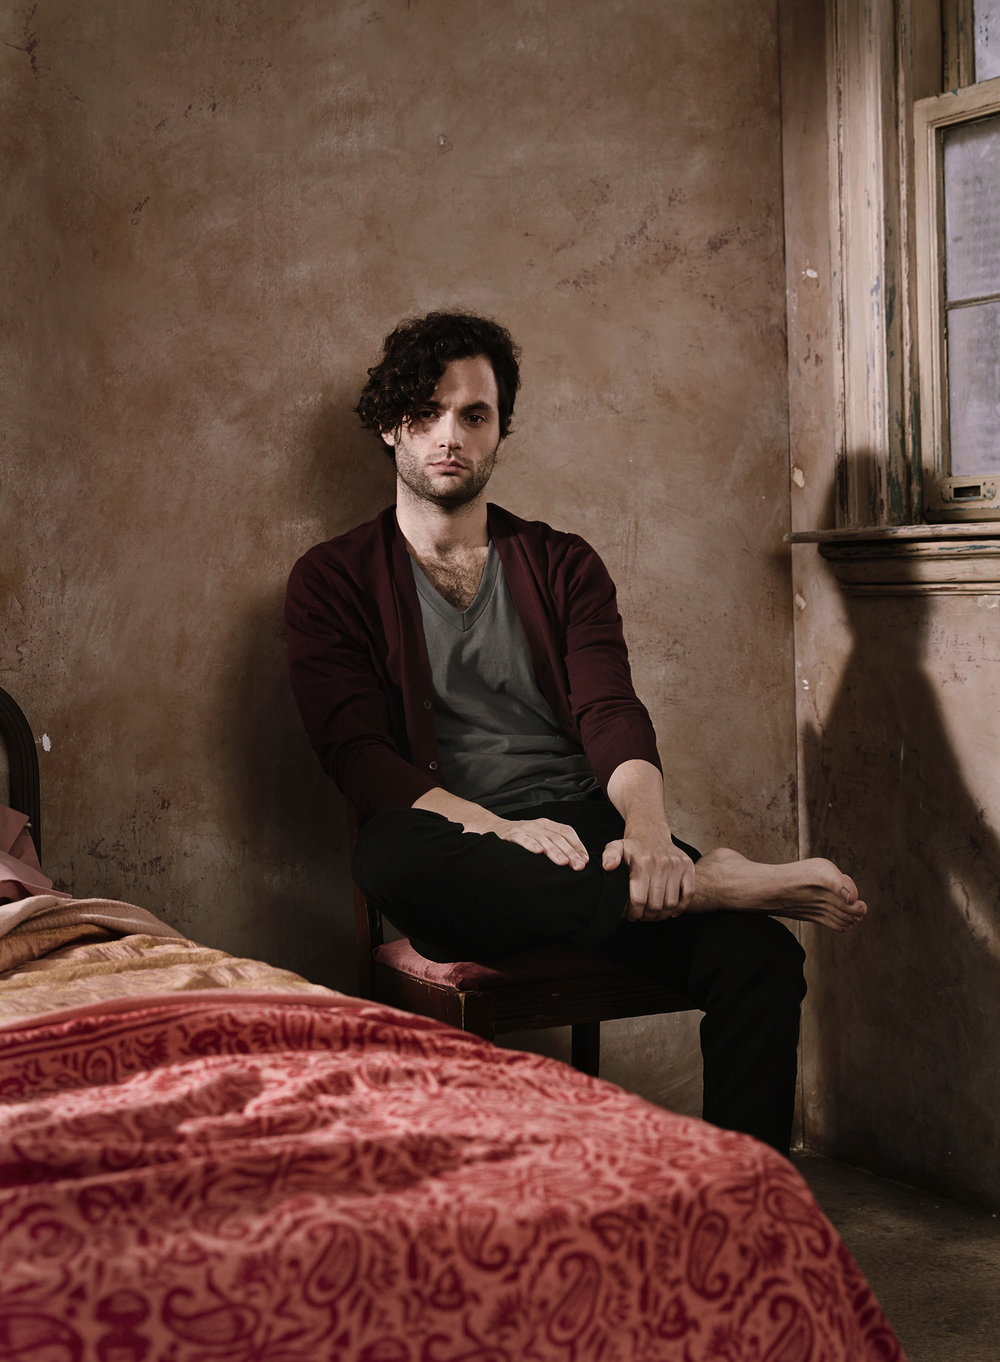 Slap_Penn_Badgley_NUP_165985_2346 copy.jpg